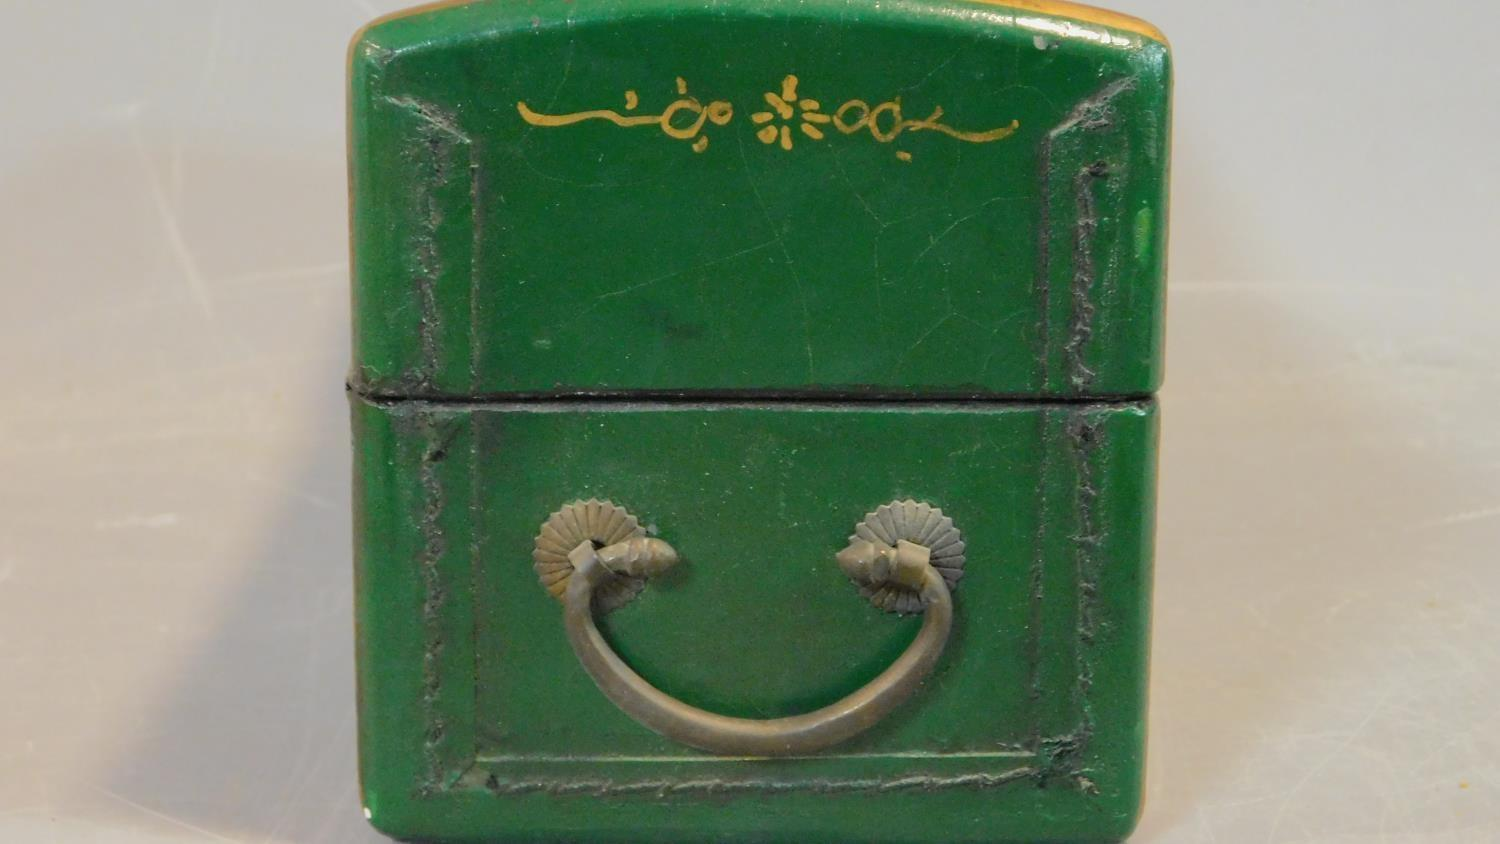 A green painted and lacquered Chinese box with floral motifs. H.12 W.28 D.11.5cm - Image 8 of 9